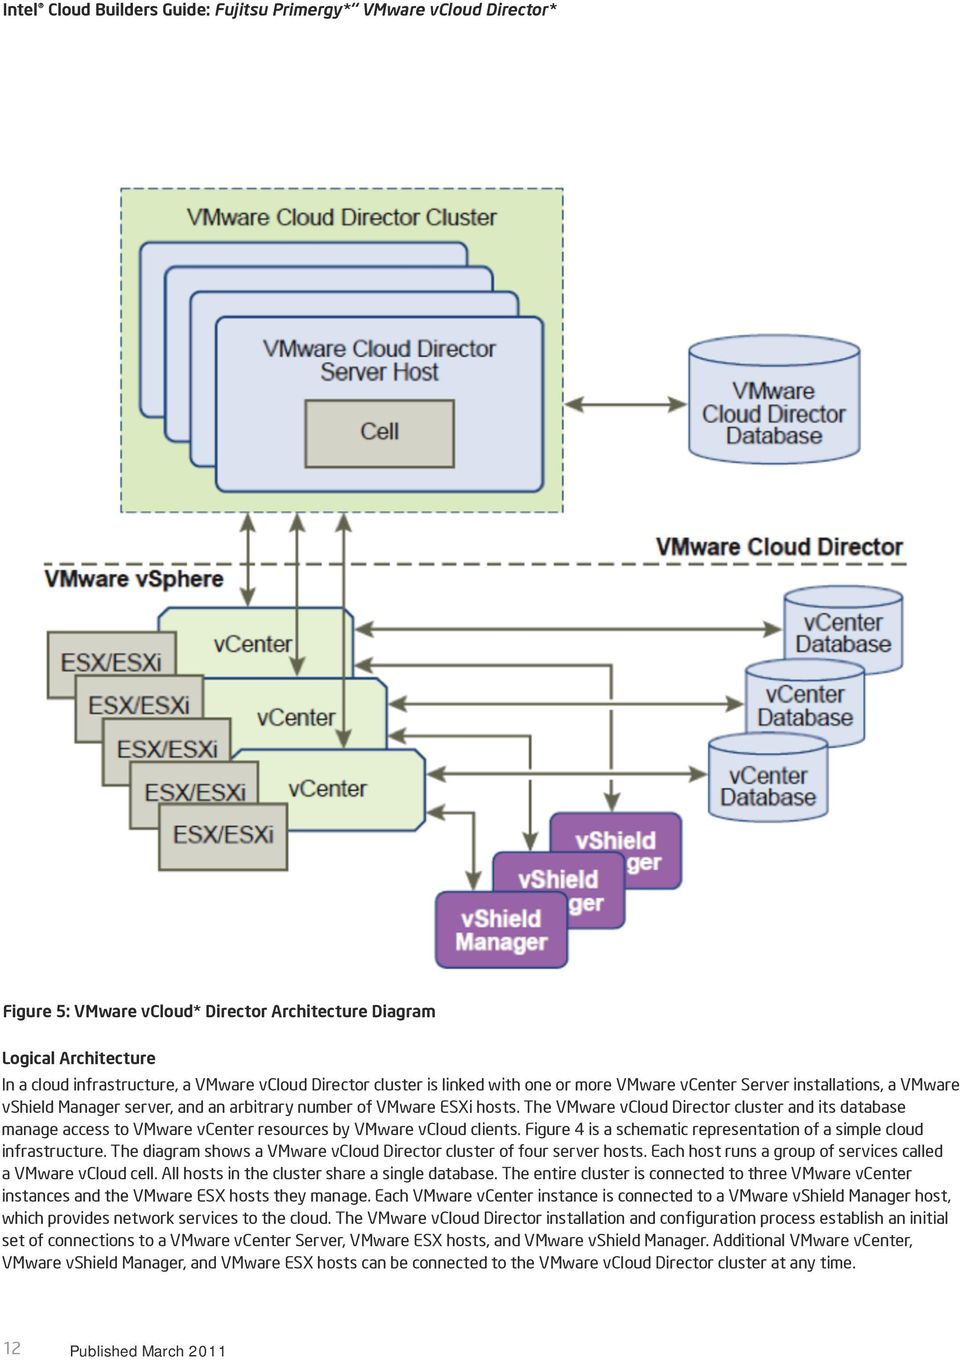 Figure 4 is a schematic representation of a simple cloud infrastructure. The diagram shows a VMware vcloud Director cluster of four server hosts.